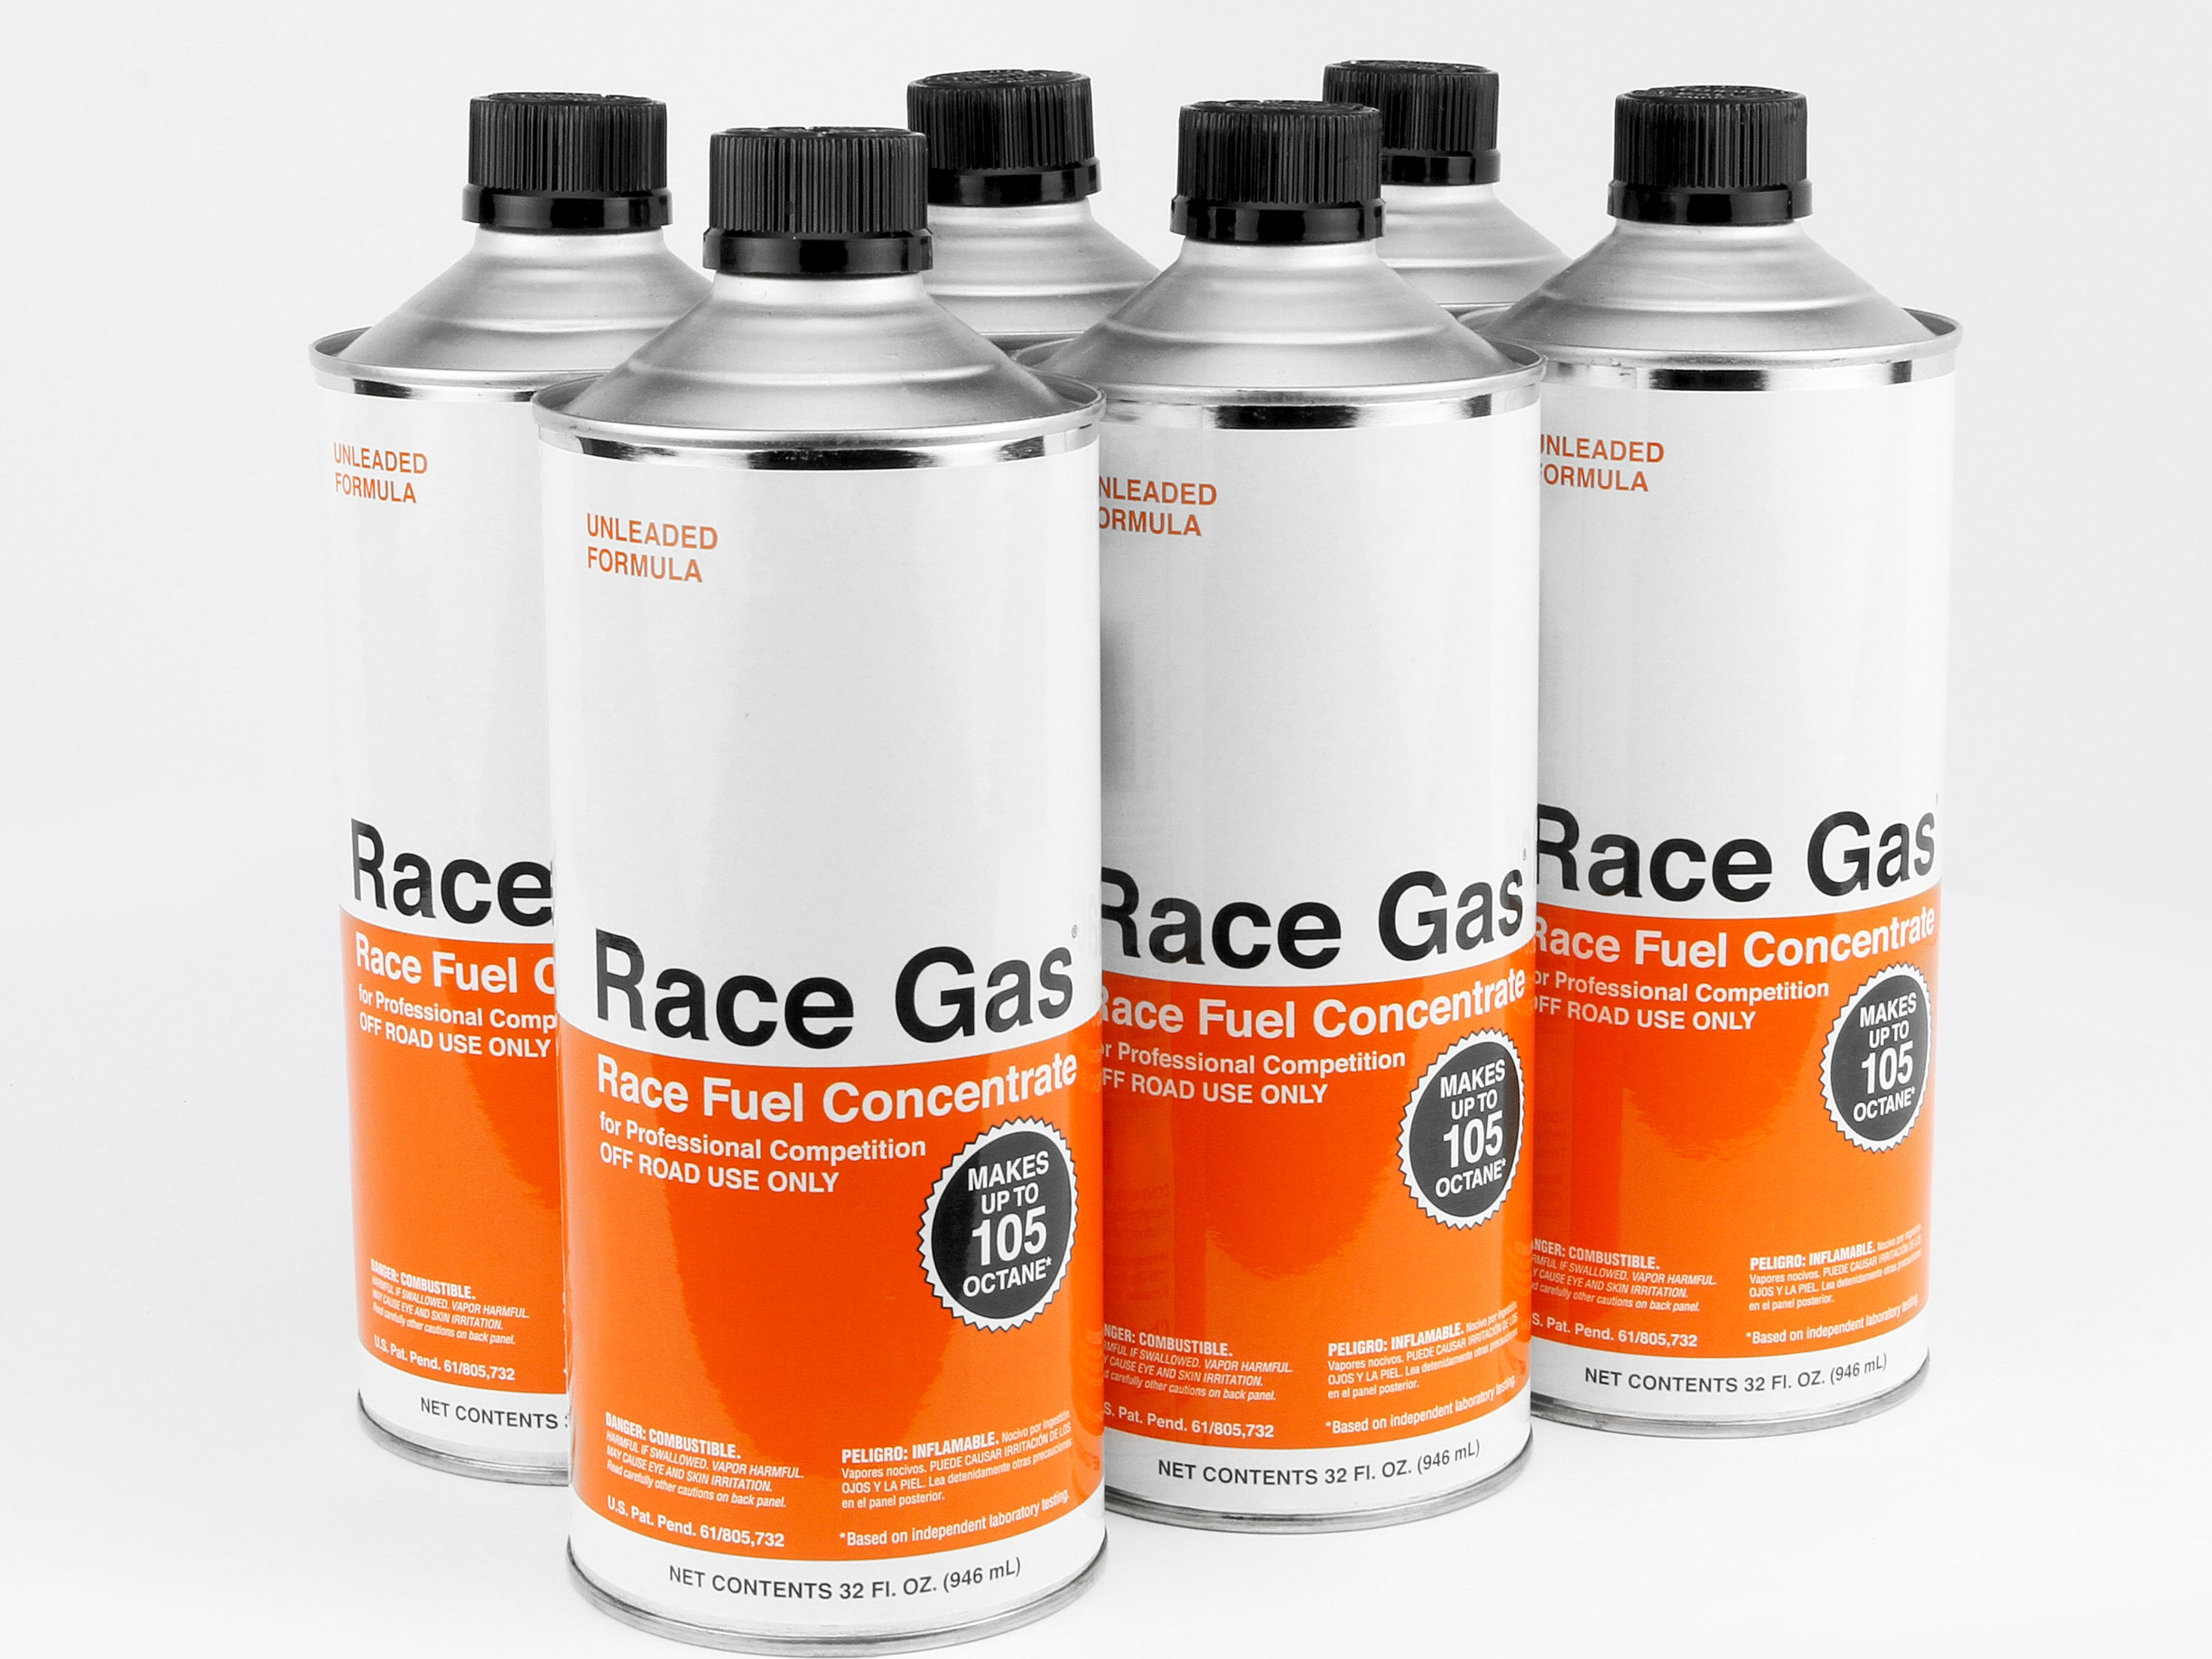 RACE GAS™ - RACE FUEL CONCENTRATE. TRANSFORMS ANY PUMP GASOLINE FROM GAS STATION INTO RACE FUEL